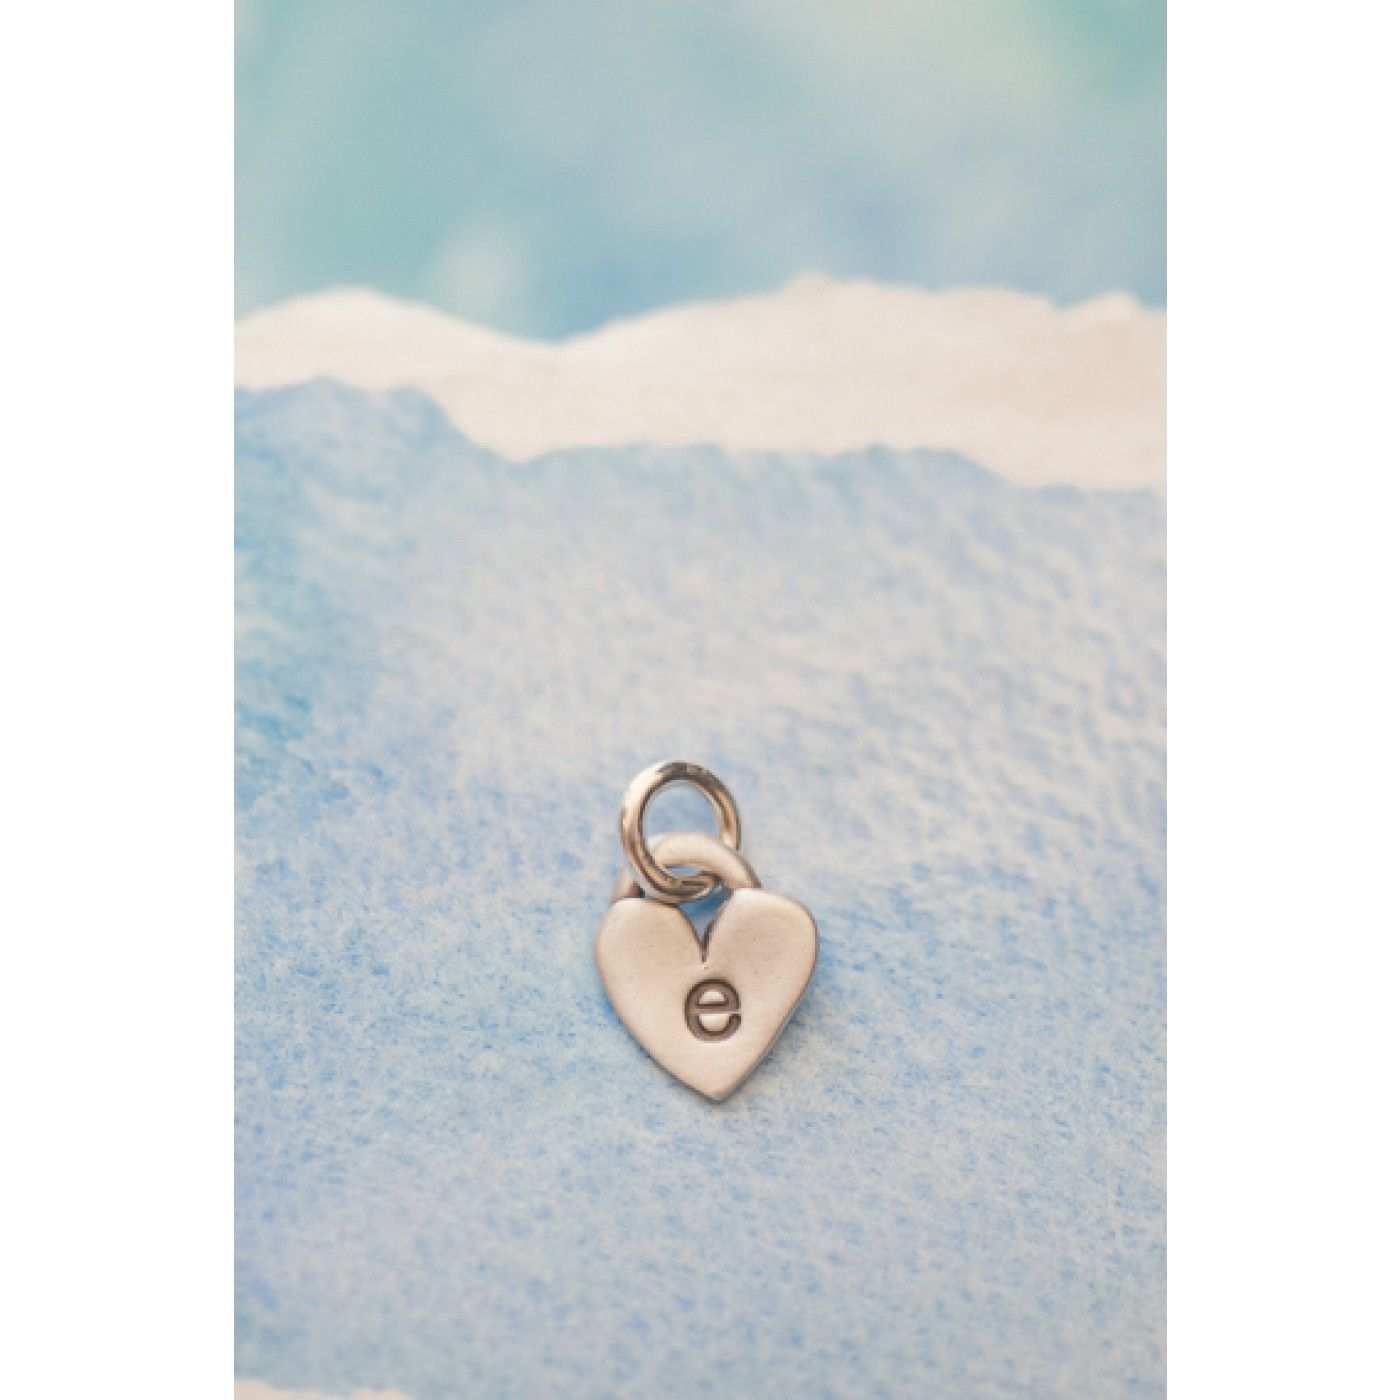 These beautiful sterling silver  hand-molded hearts are stamped with the initial of your choice, attached to a small sterling silver jumpring. It's absolutely darling and full of meaning!